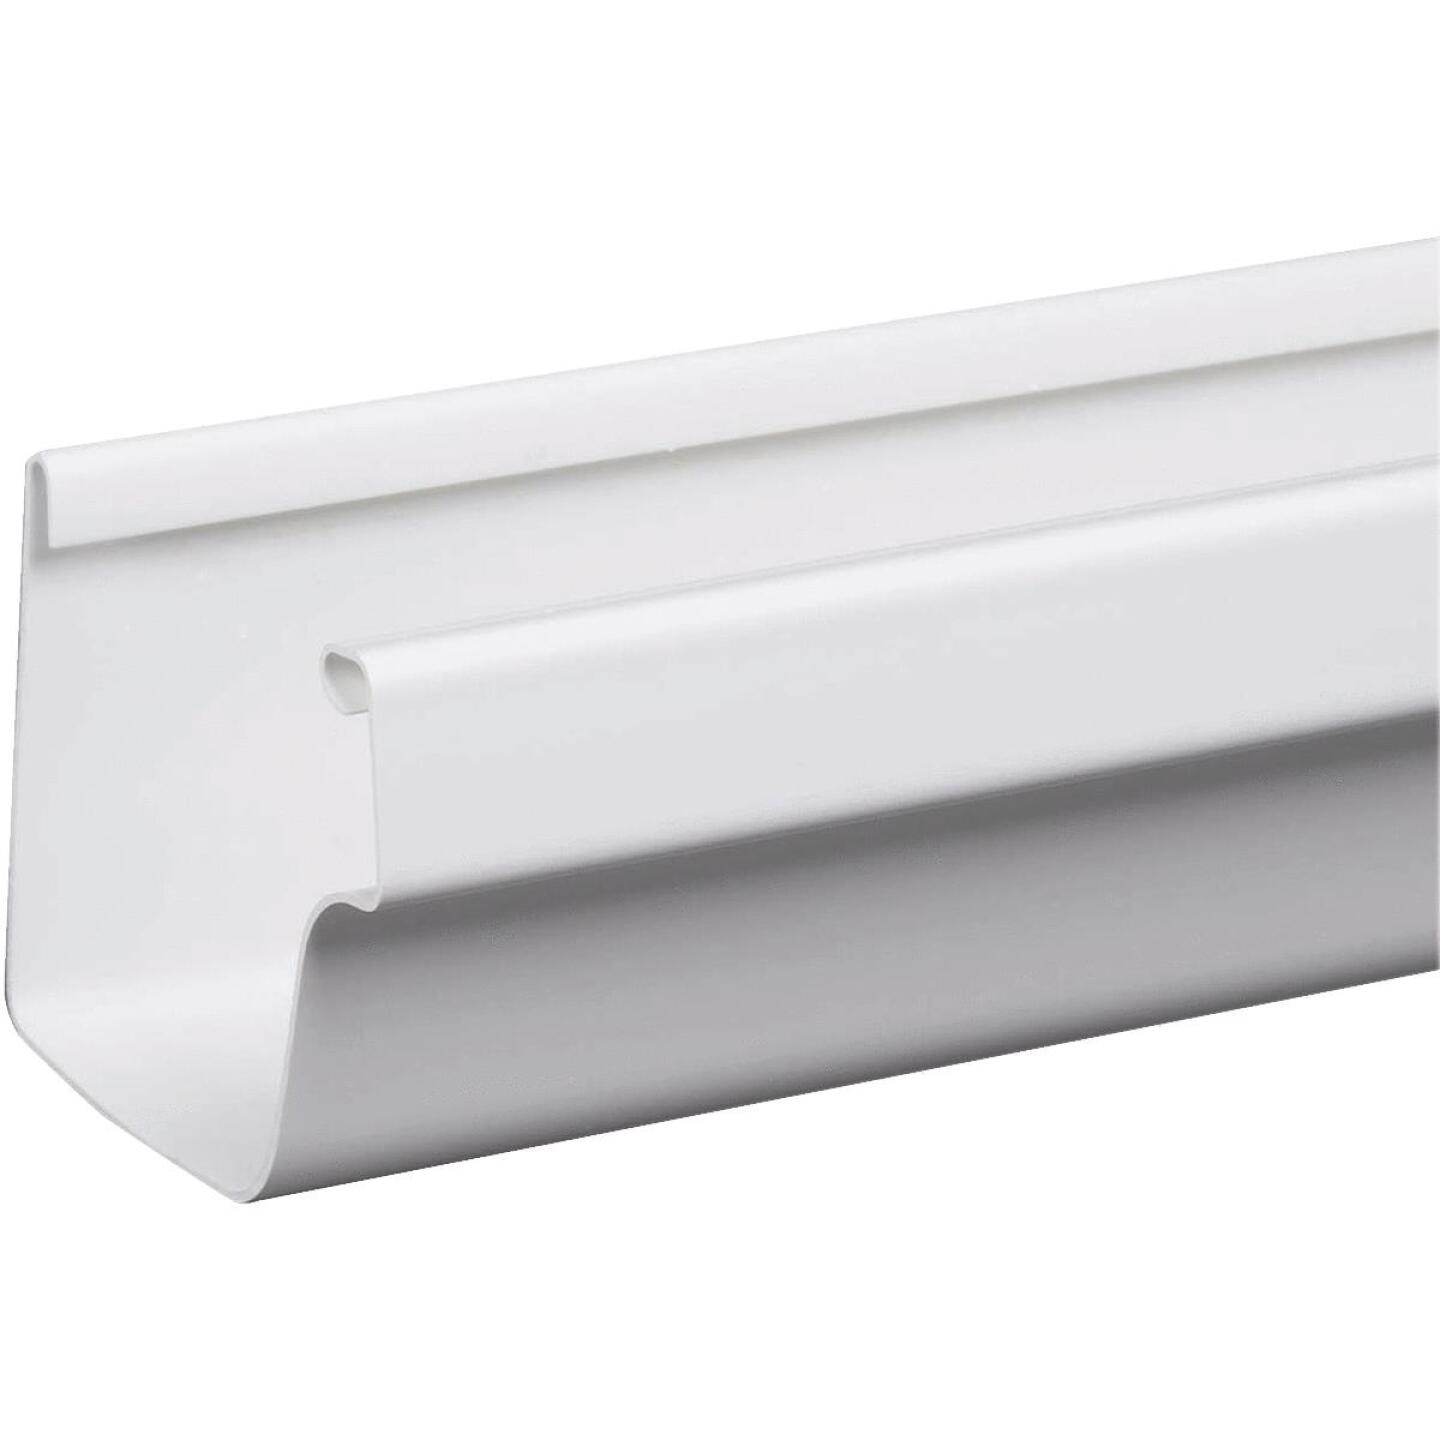 Amerimax 5 In. Traditional K-Style White Vinyl Gutter 10 Ft. Image 1